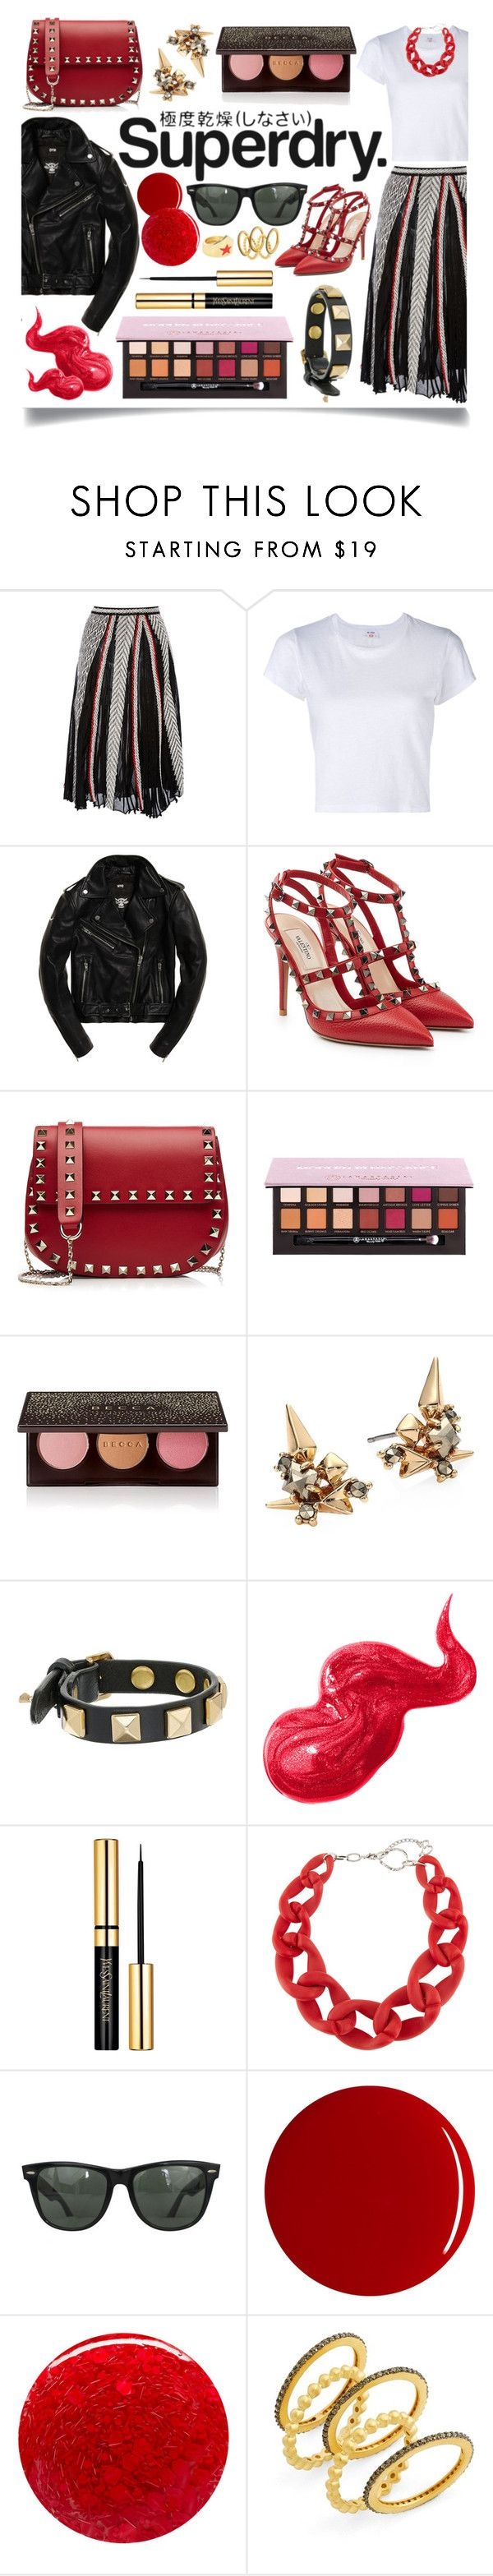 """The Cover Up – Jackets by Superdry: Contest Entry"" by ittie-kittie ❤ liked on Polyvore featuring Emilio Pucci, RE/DONE, Superdry, Valentino, Anastasia Beverly Hills, Becca, Alexis Bittar, Rebecca Minkoff, Bobbi Brown Cosmetics and DIANA BROUSSARD"